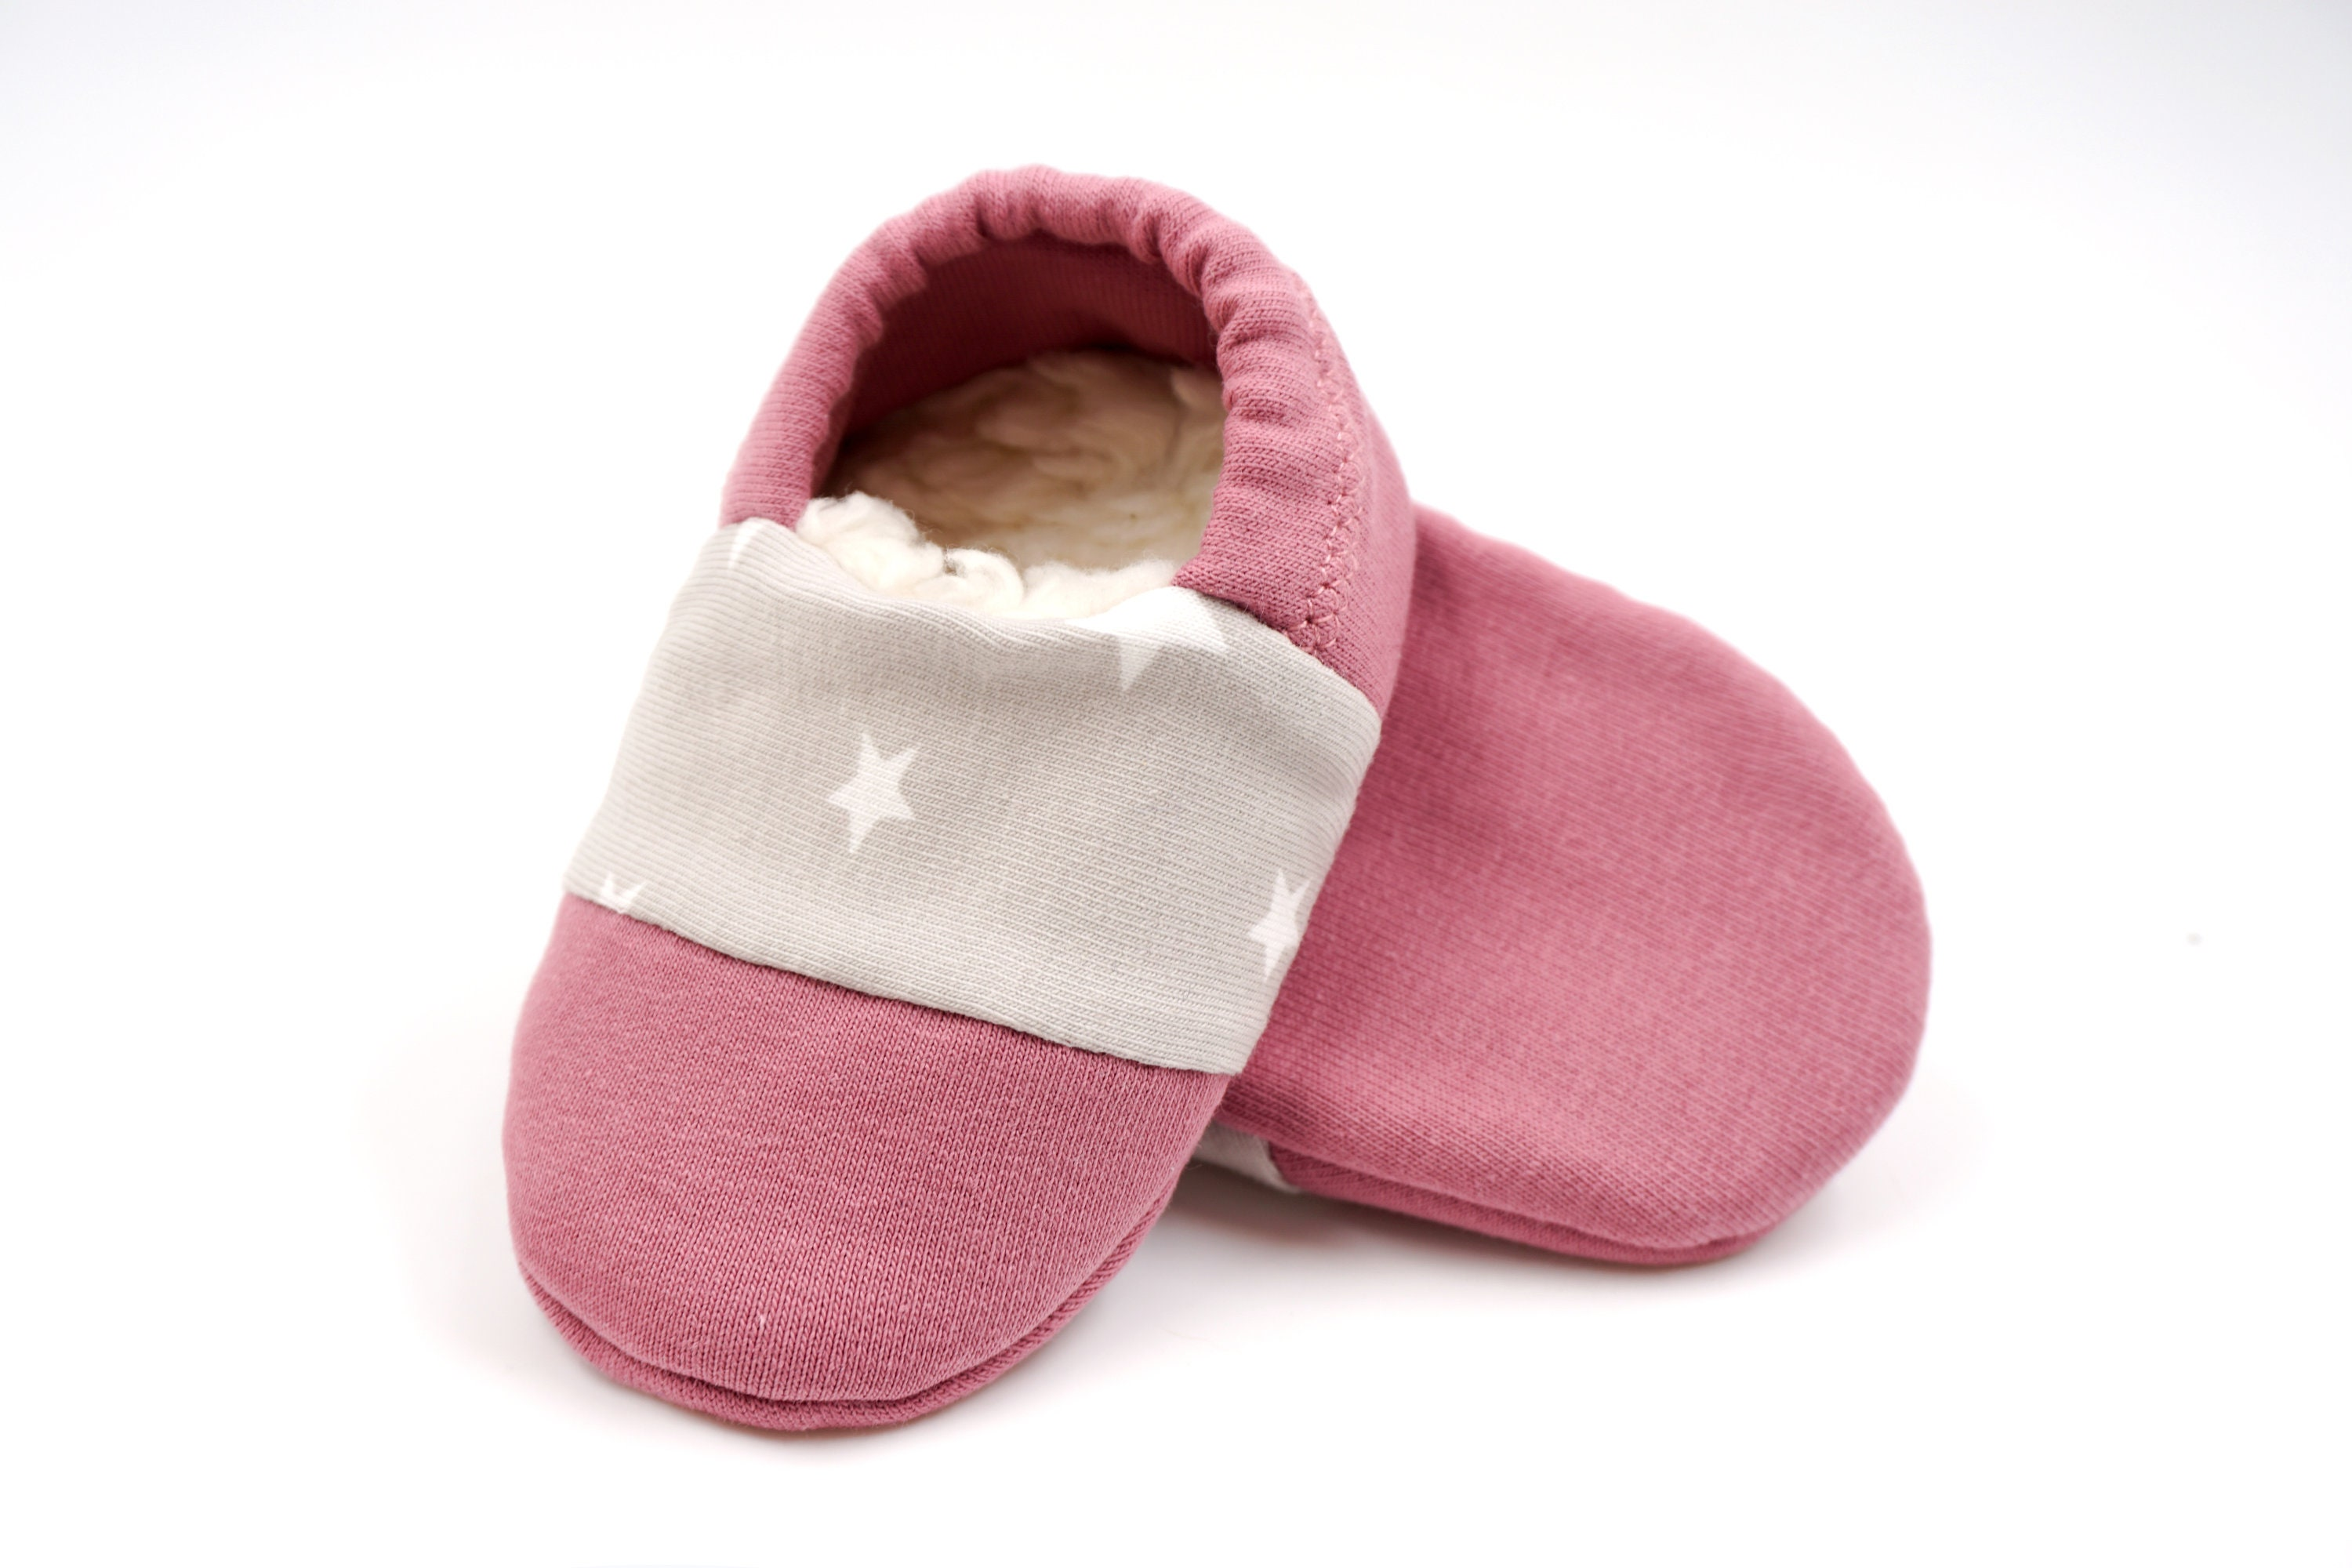 7ba06fdaf49718 Babies   minis   Winter Edition   morning dawn-cute baby shoes made of  fabric with stars in old pink with lined sole-crawl shoes